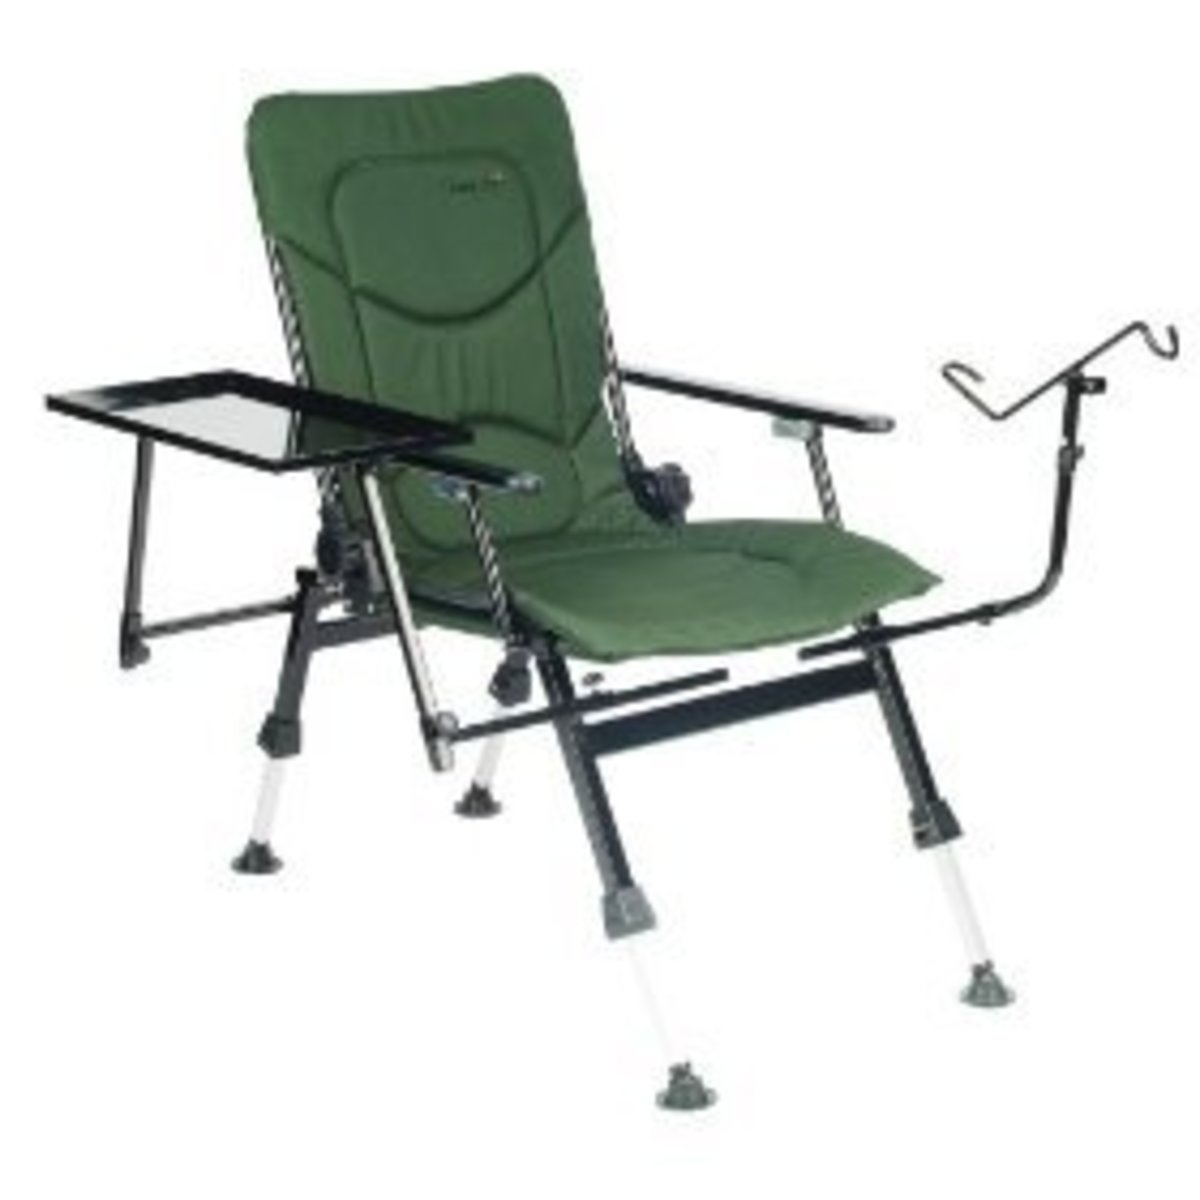 Pro Logic Fishing Chair